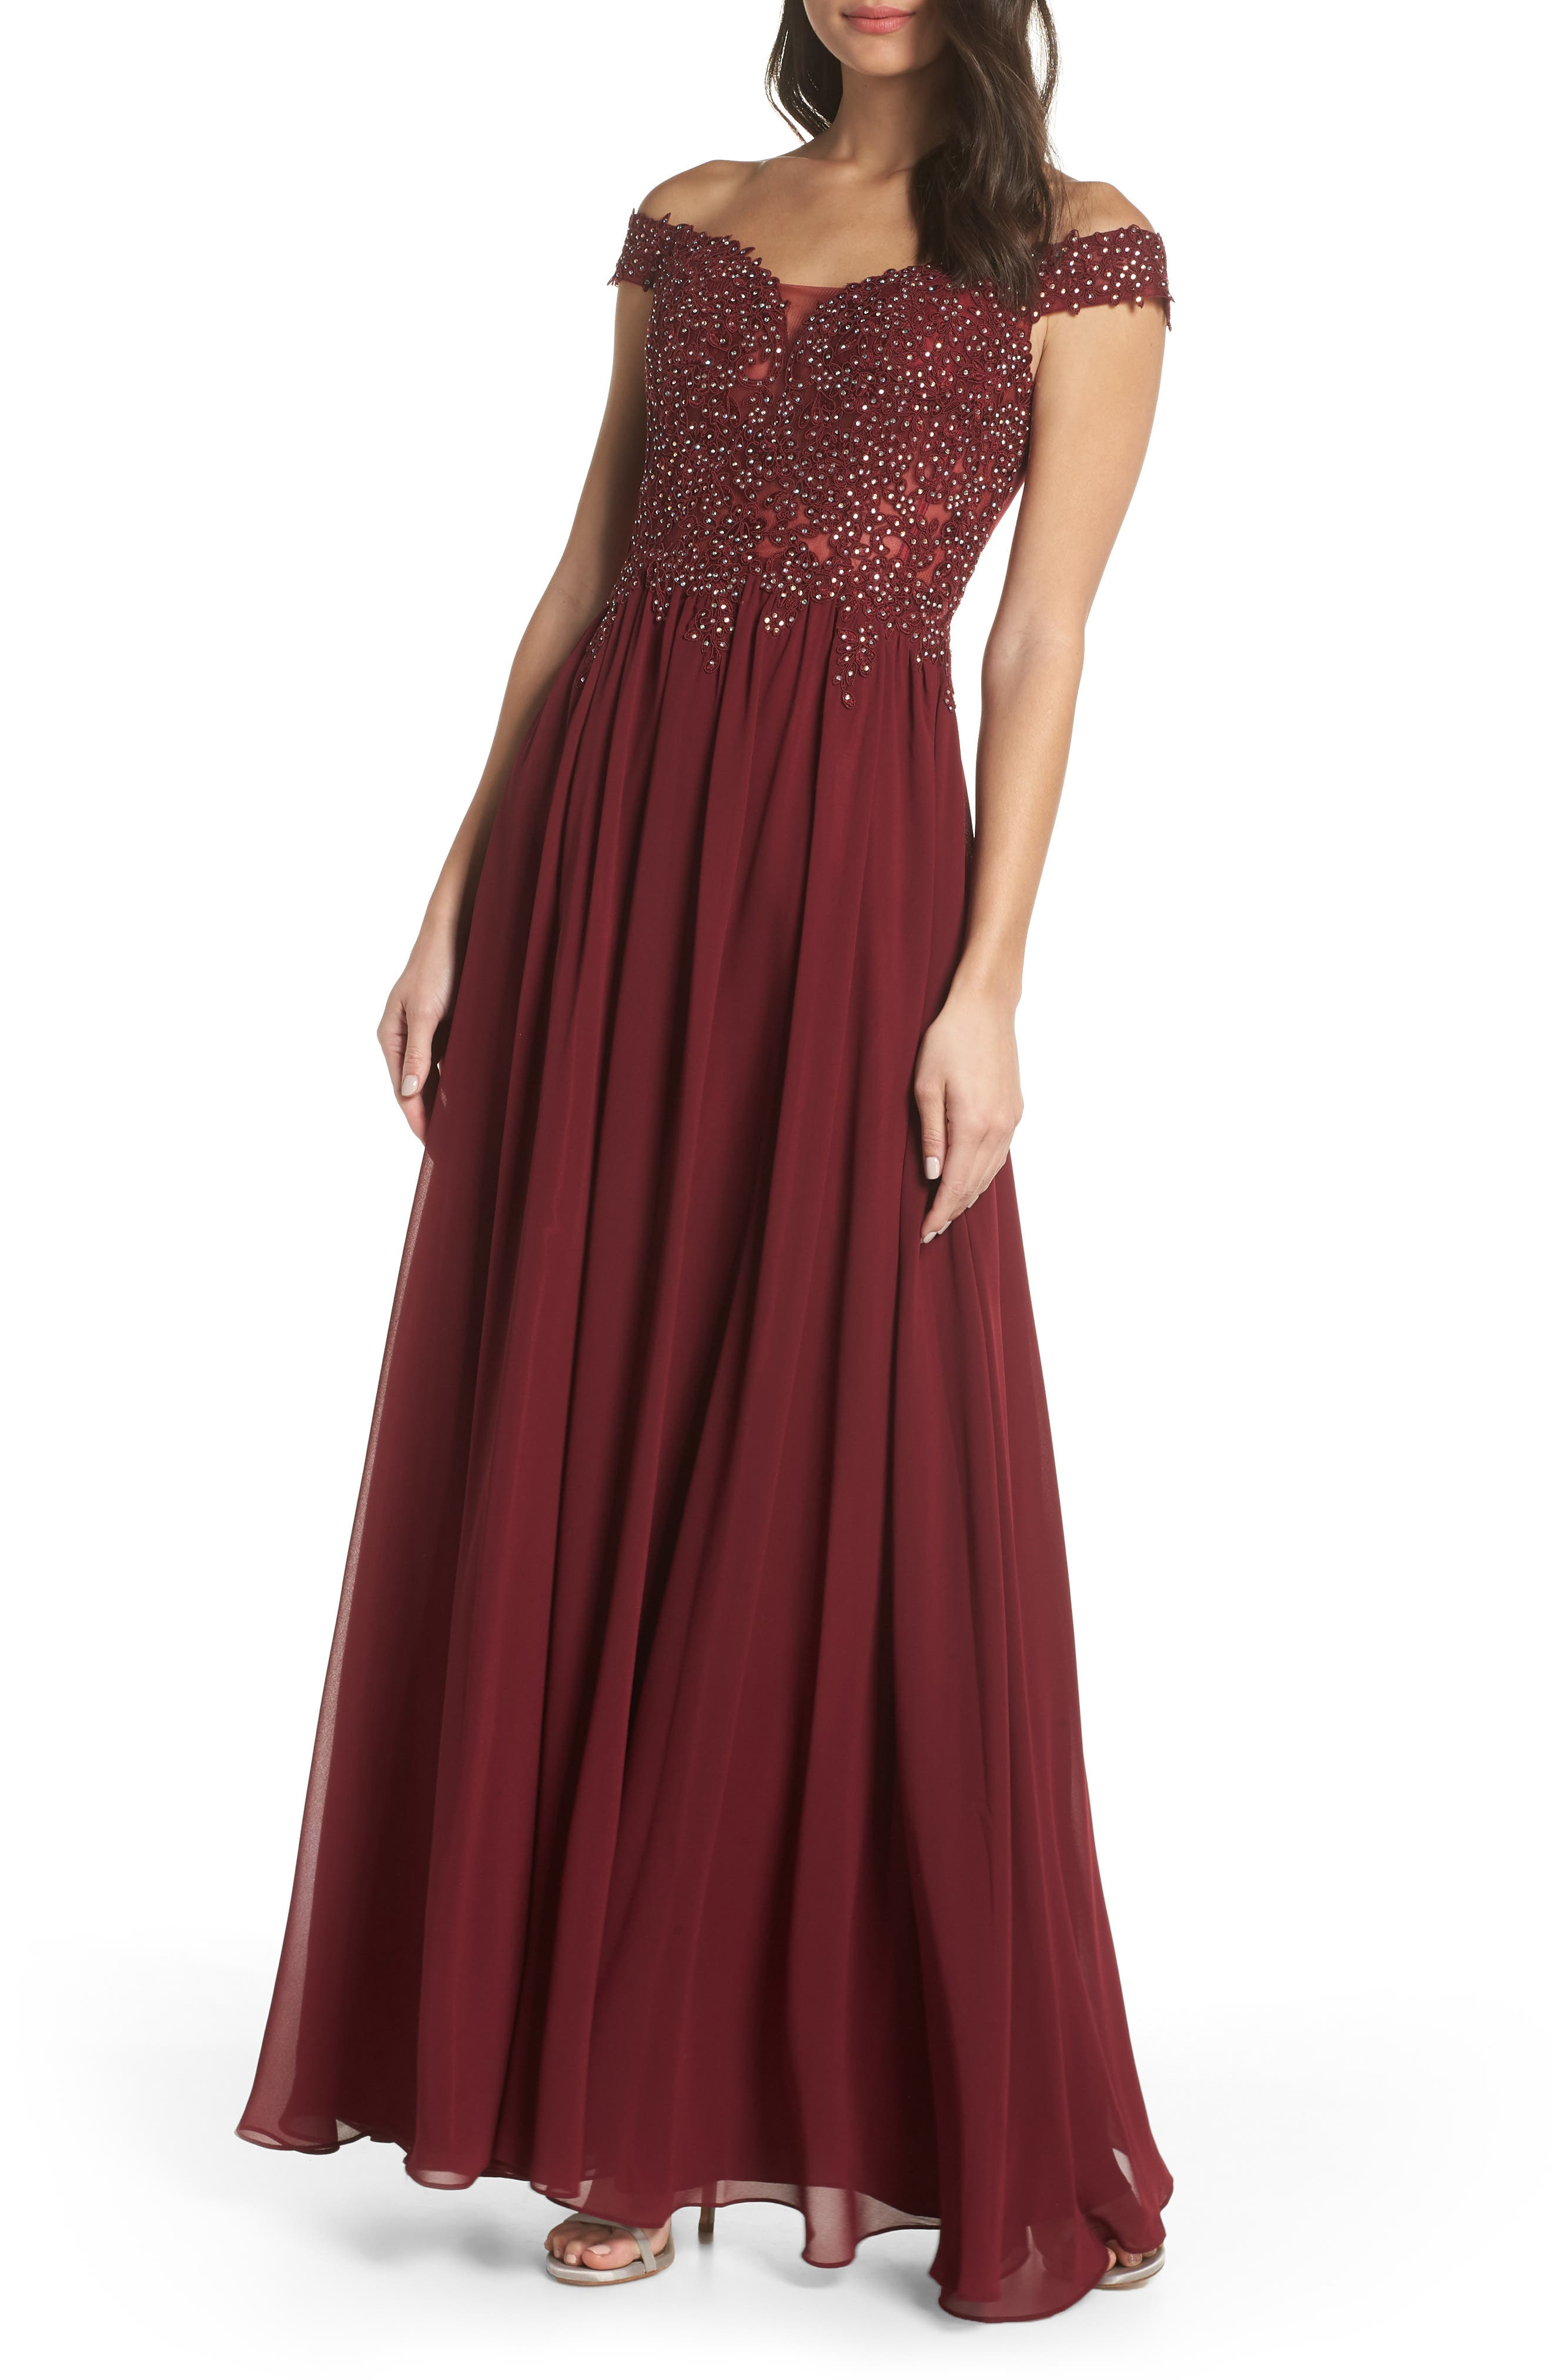 Blondie Nites Off The Shoulder Illusion Back Gown, Burgundy